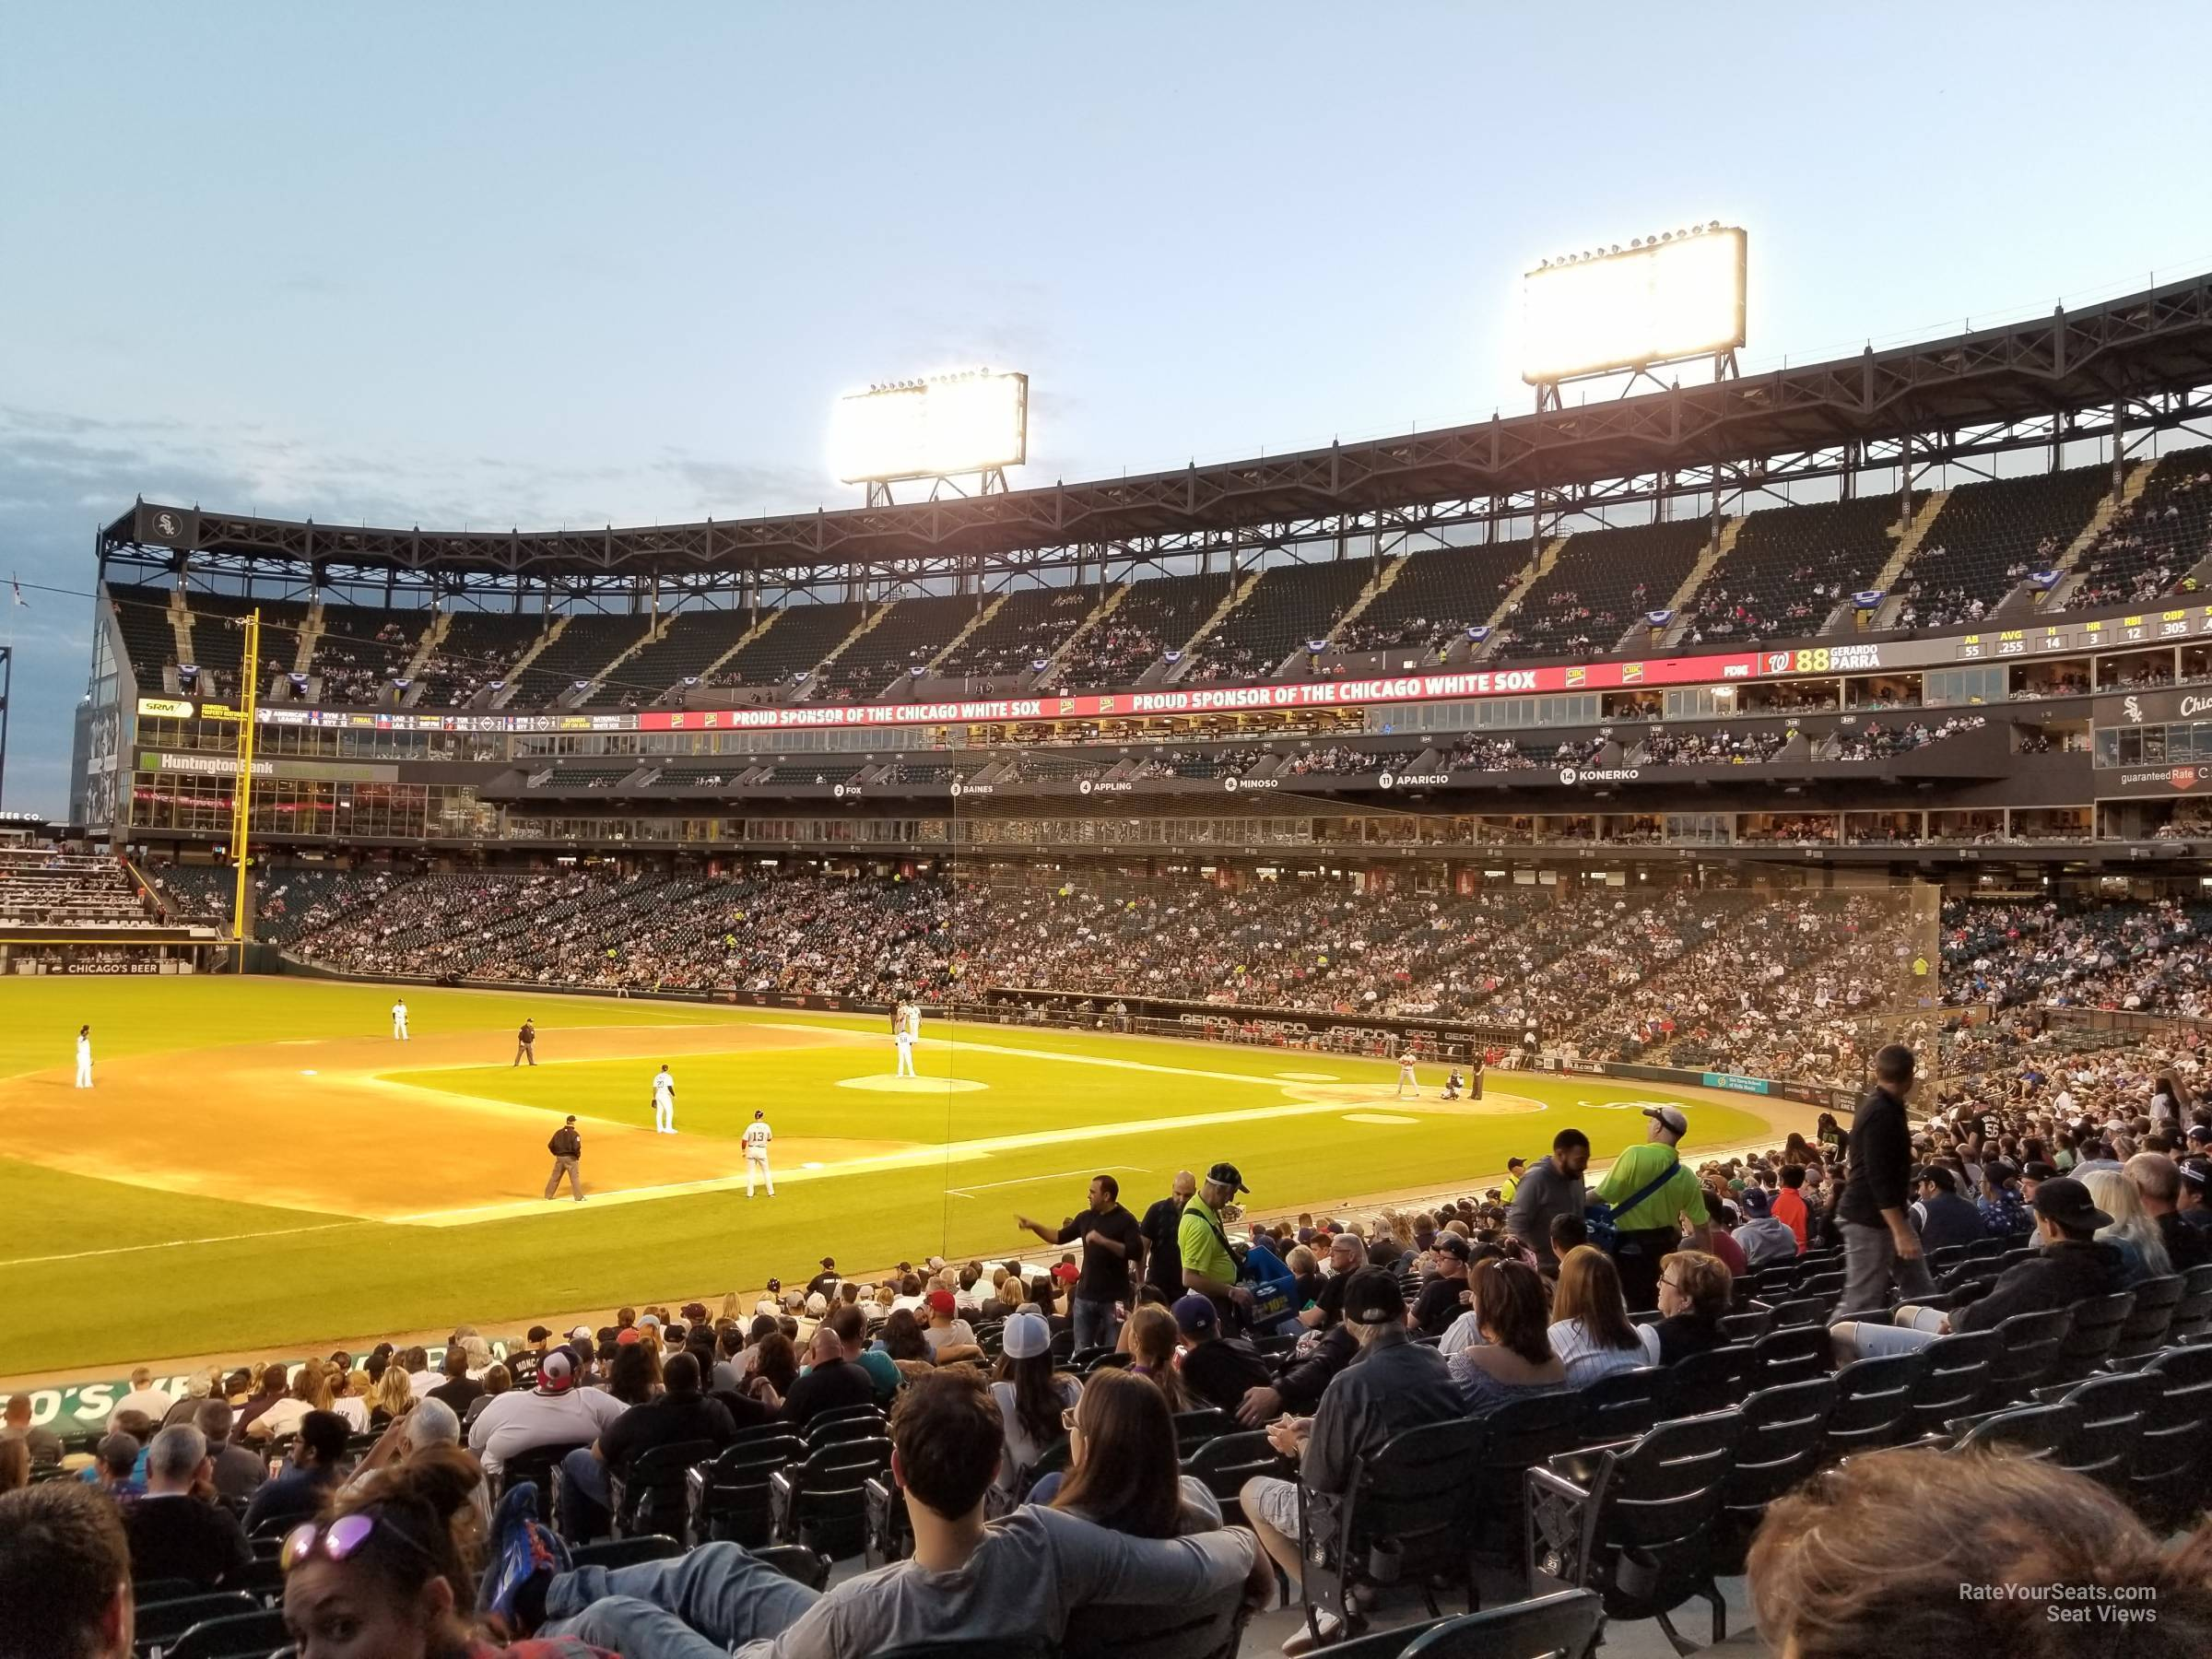 Section 145 seat view